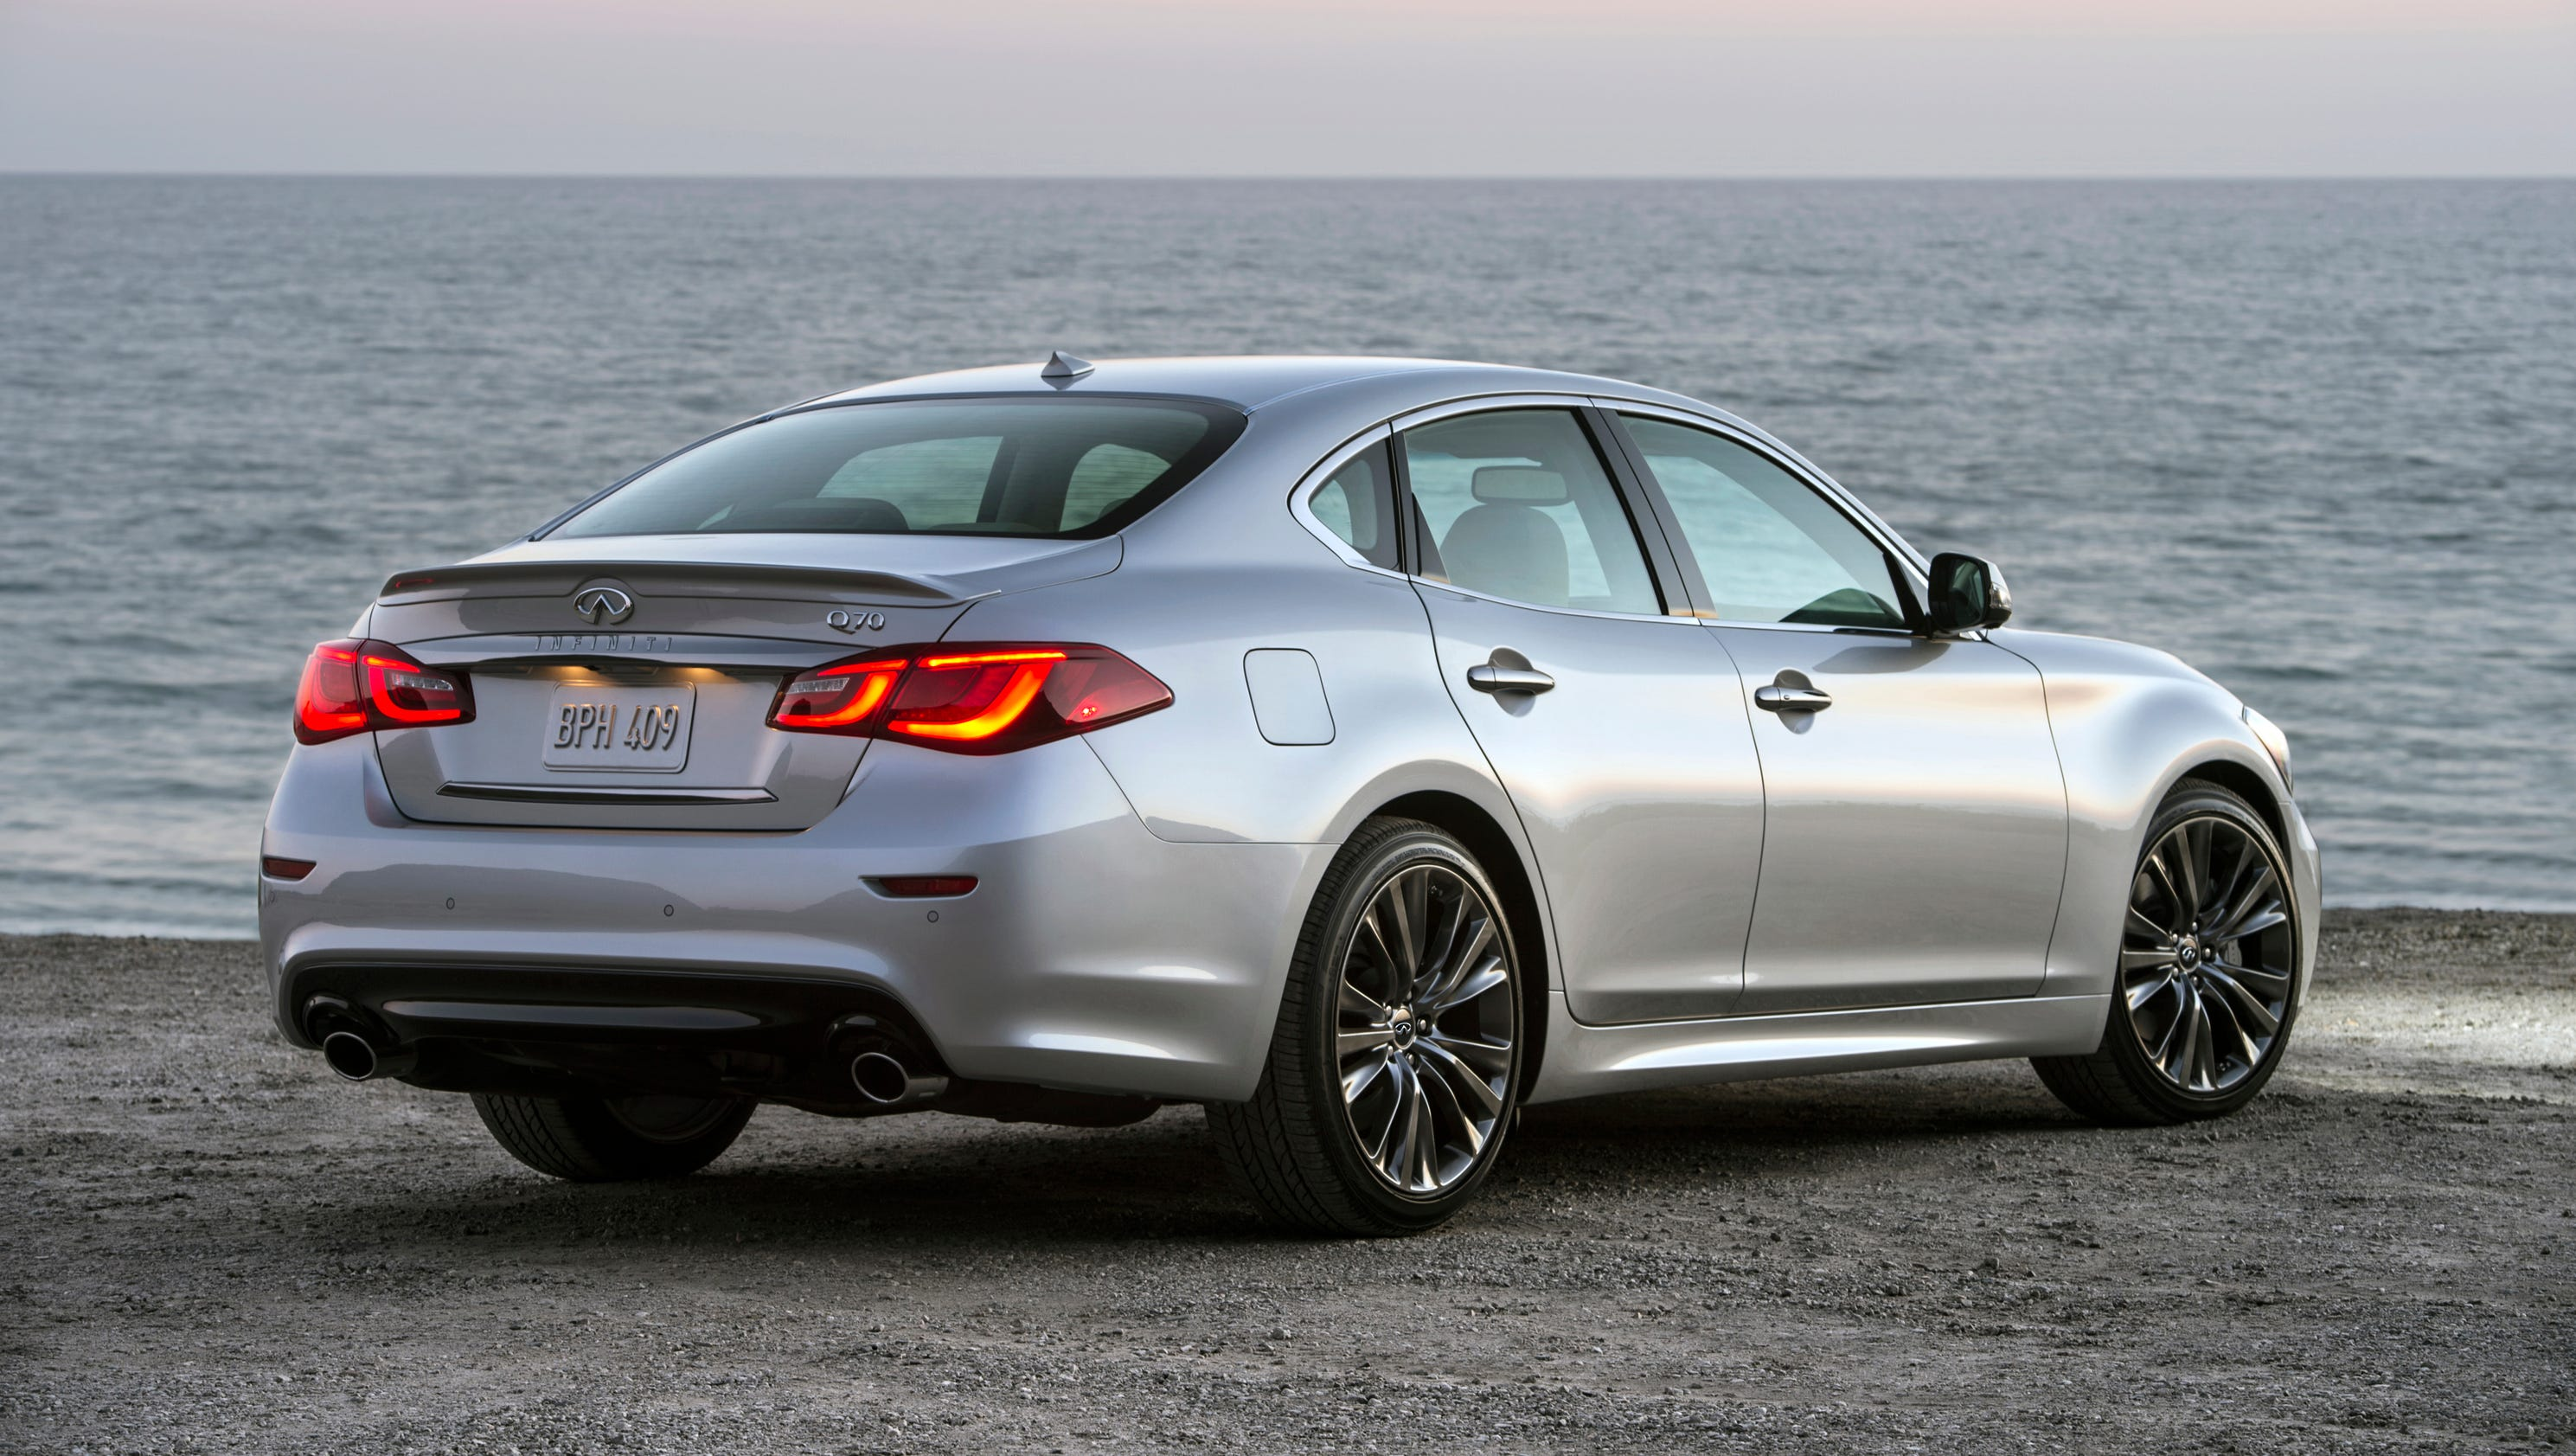 Consumer Reports' Top 10 most reliable cars